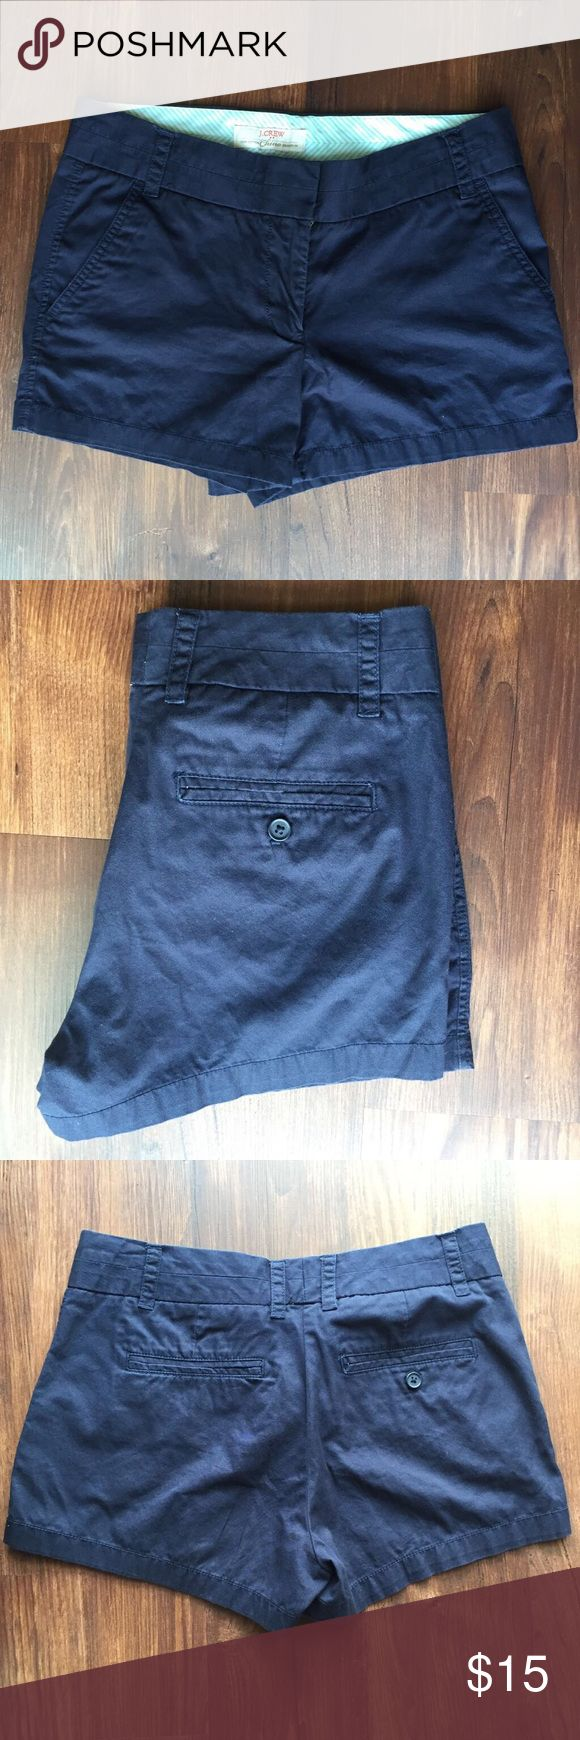 J Crew Chino Broken In Shorts Women's 6 Navy Blue Chino style shorts by J Crew. Dark Navy Blue. Broken-in shorts. Size 6. 100% cotton. J. Crew Shorts